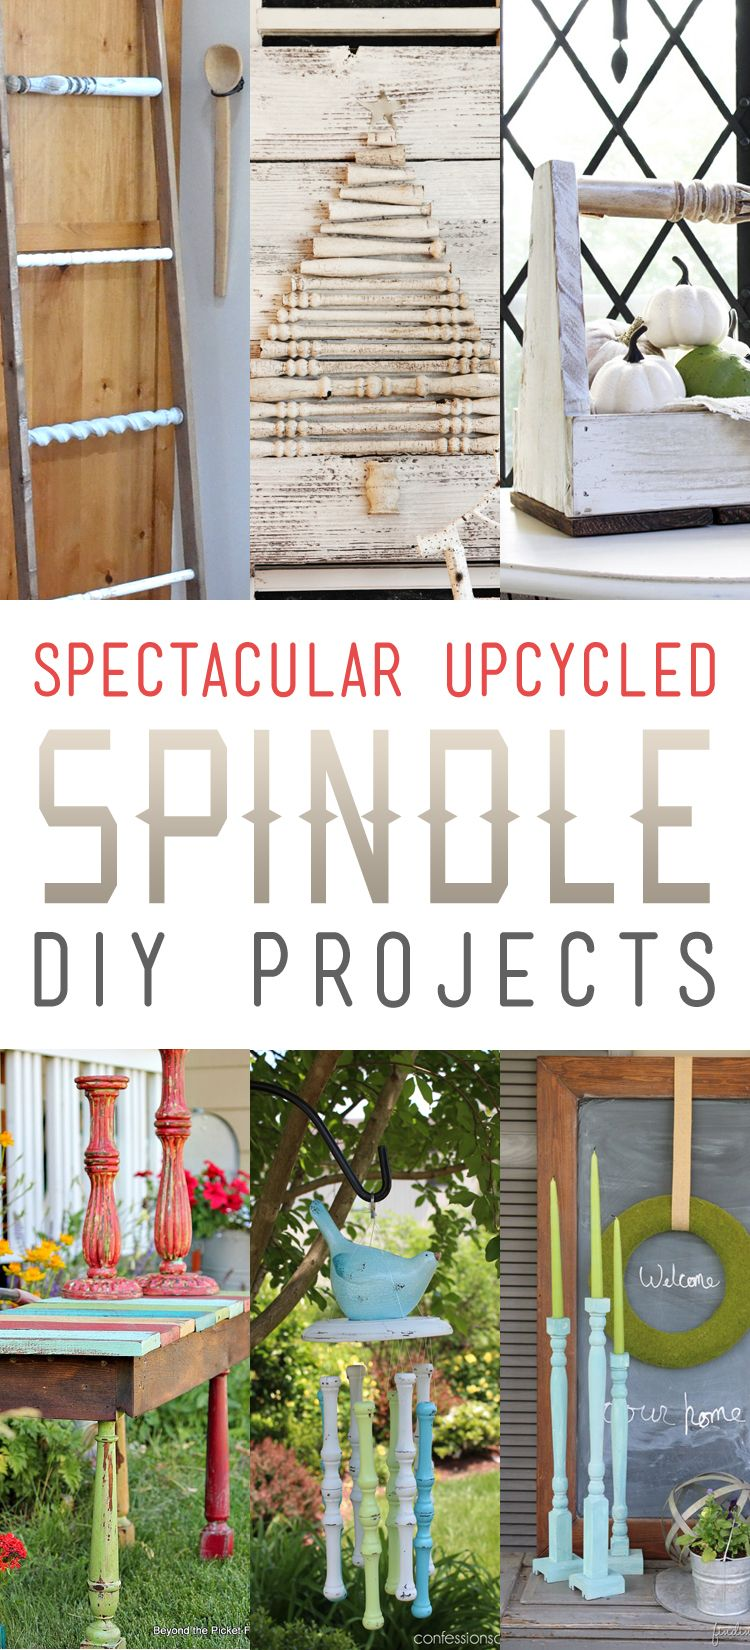 Spectacular Upcycled Spindle Diy Projects Diy Ideas Diy Wood